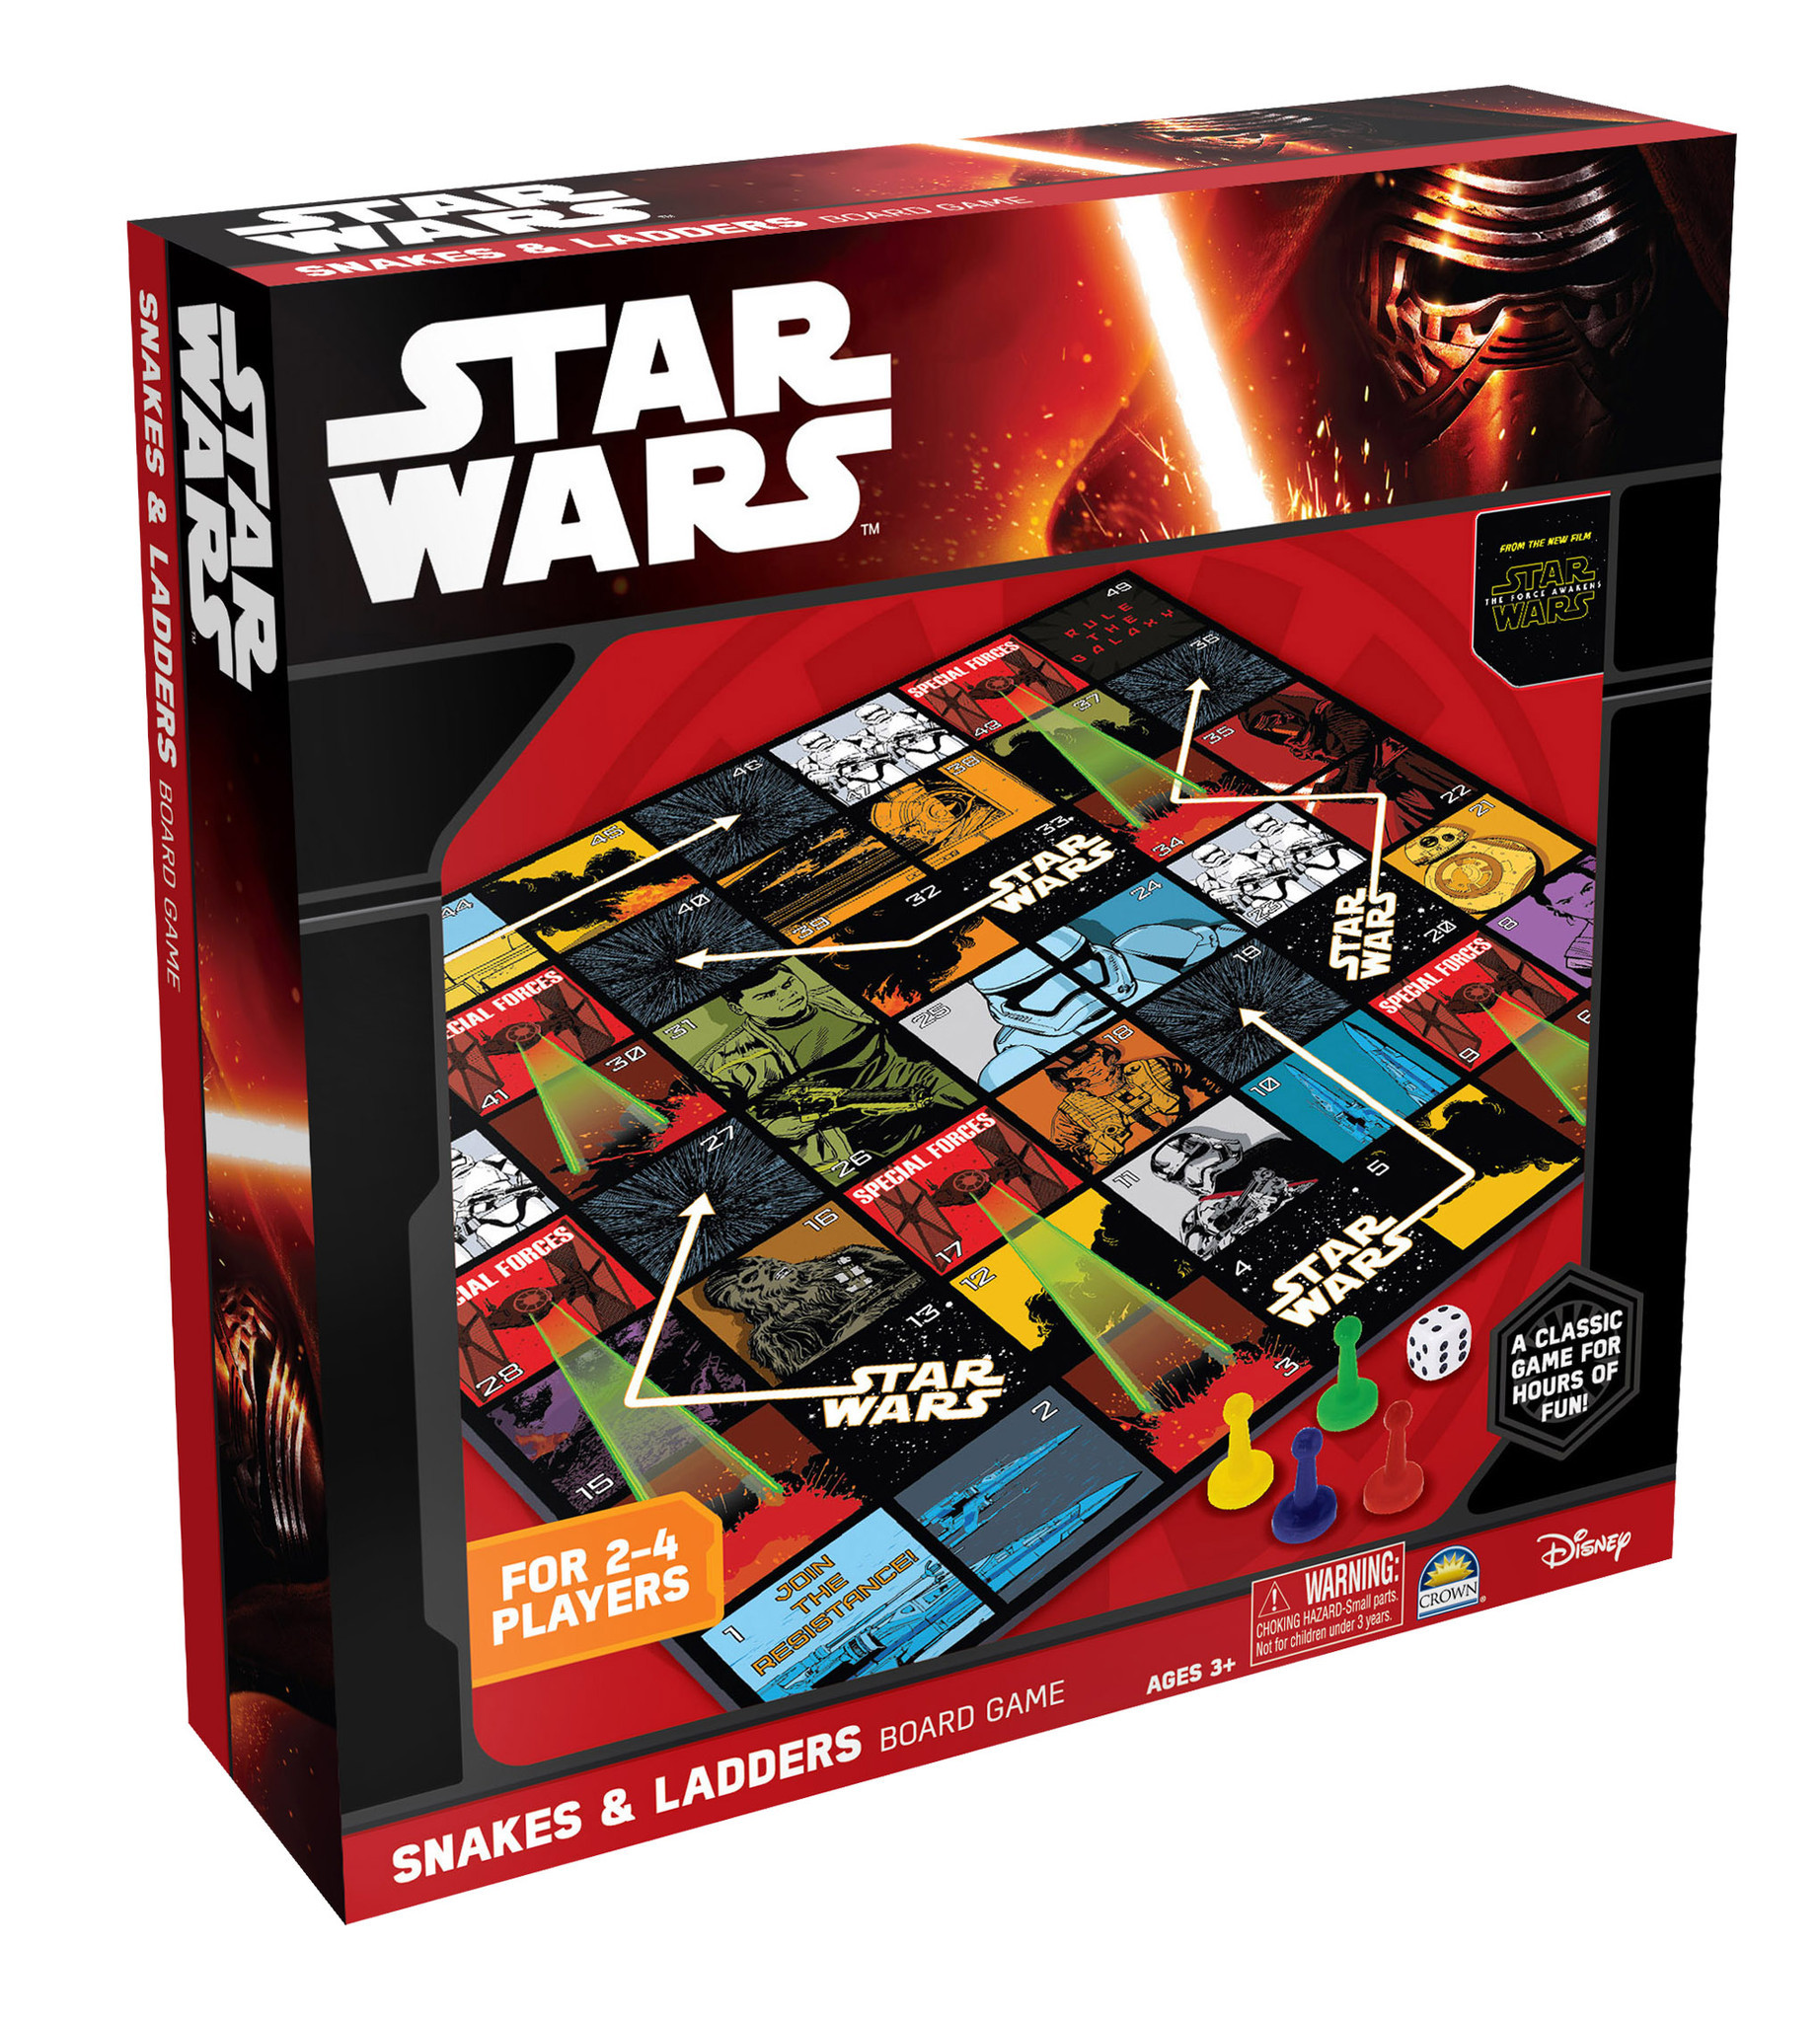 Star Wars The Force Awakens Snakes & Ladders